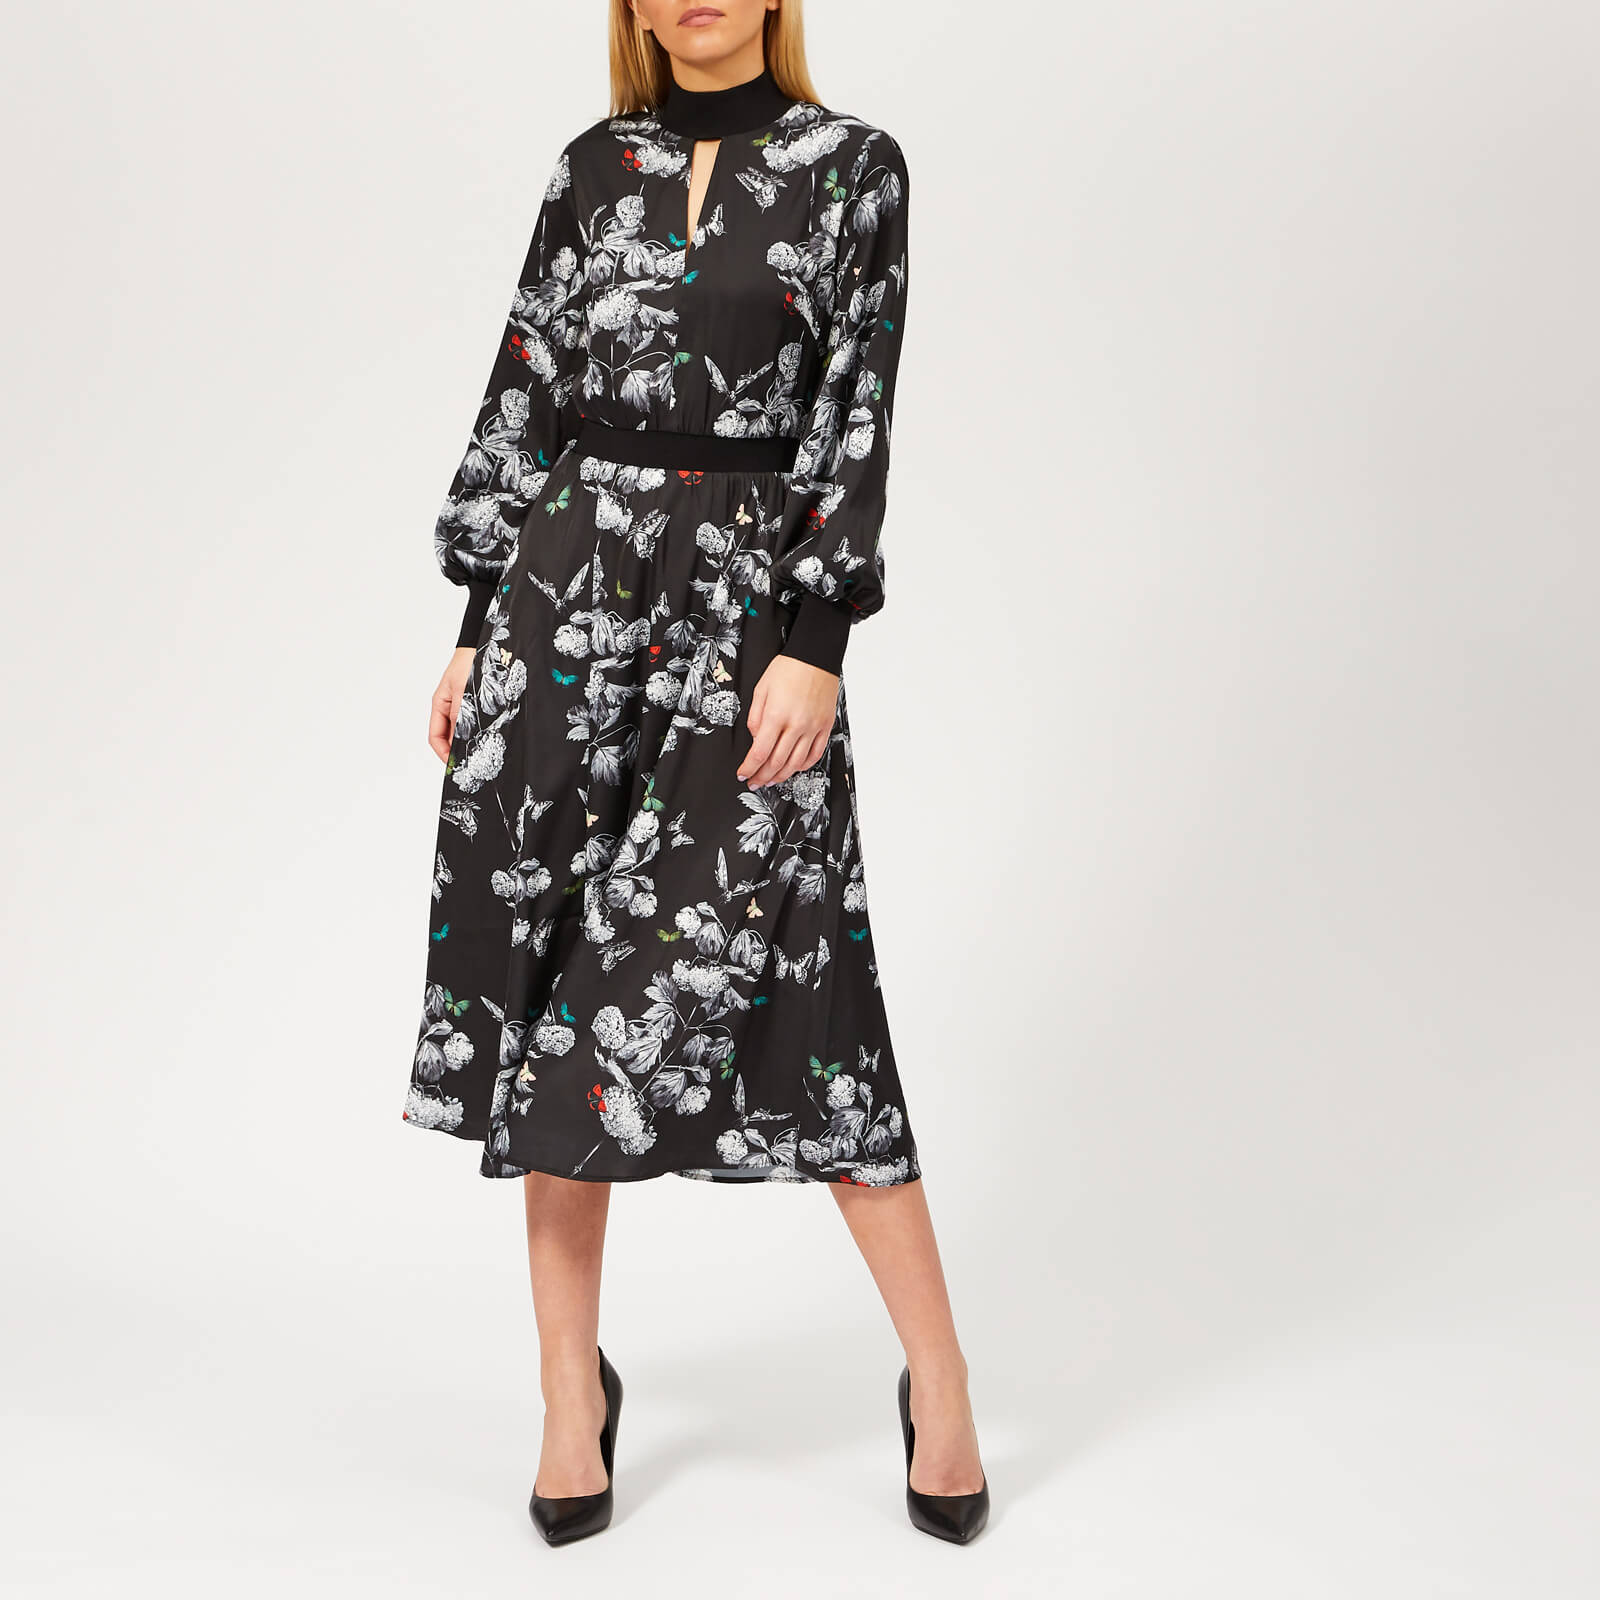 92c0c318c33 Ted Baker Women's Eynah Narrnia Midi Dress - Black Womens Clothing |  TheHut.com